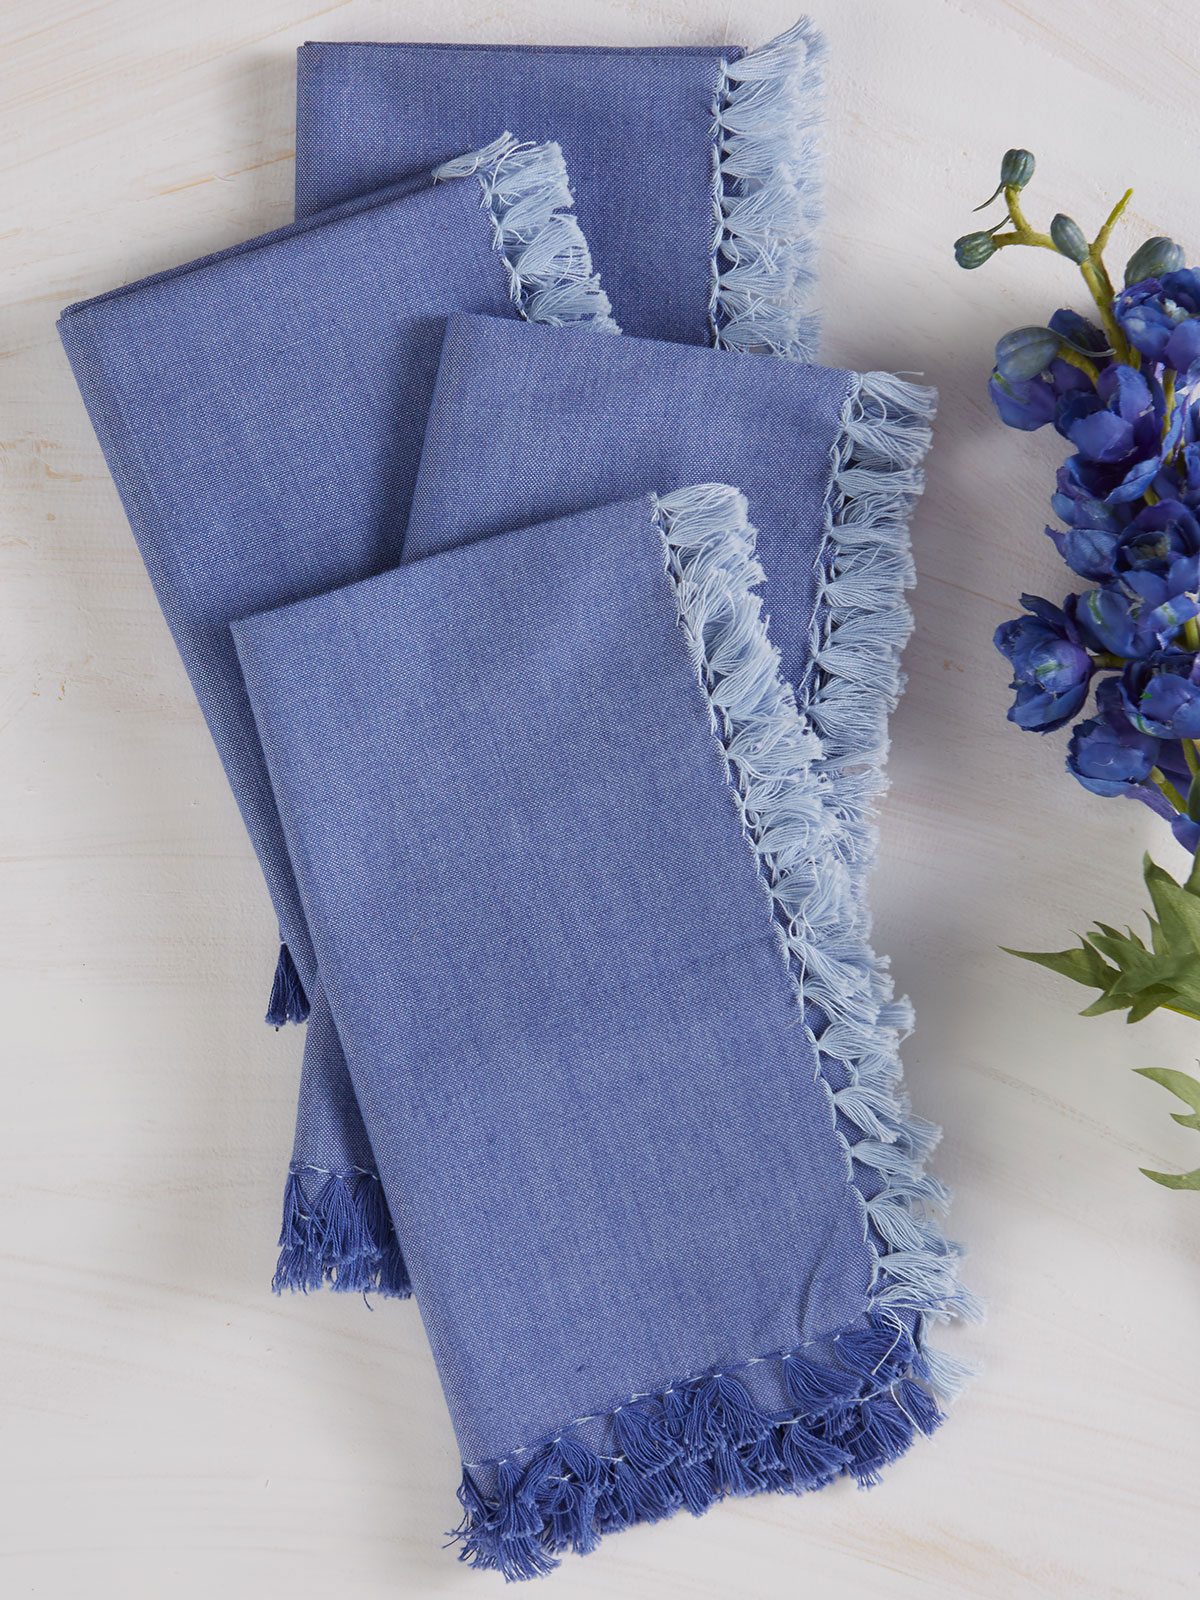 Chambray Napkin Set of 4 - Blue